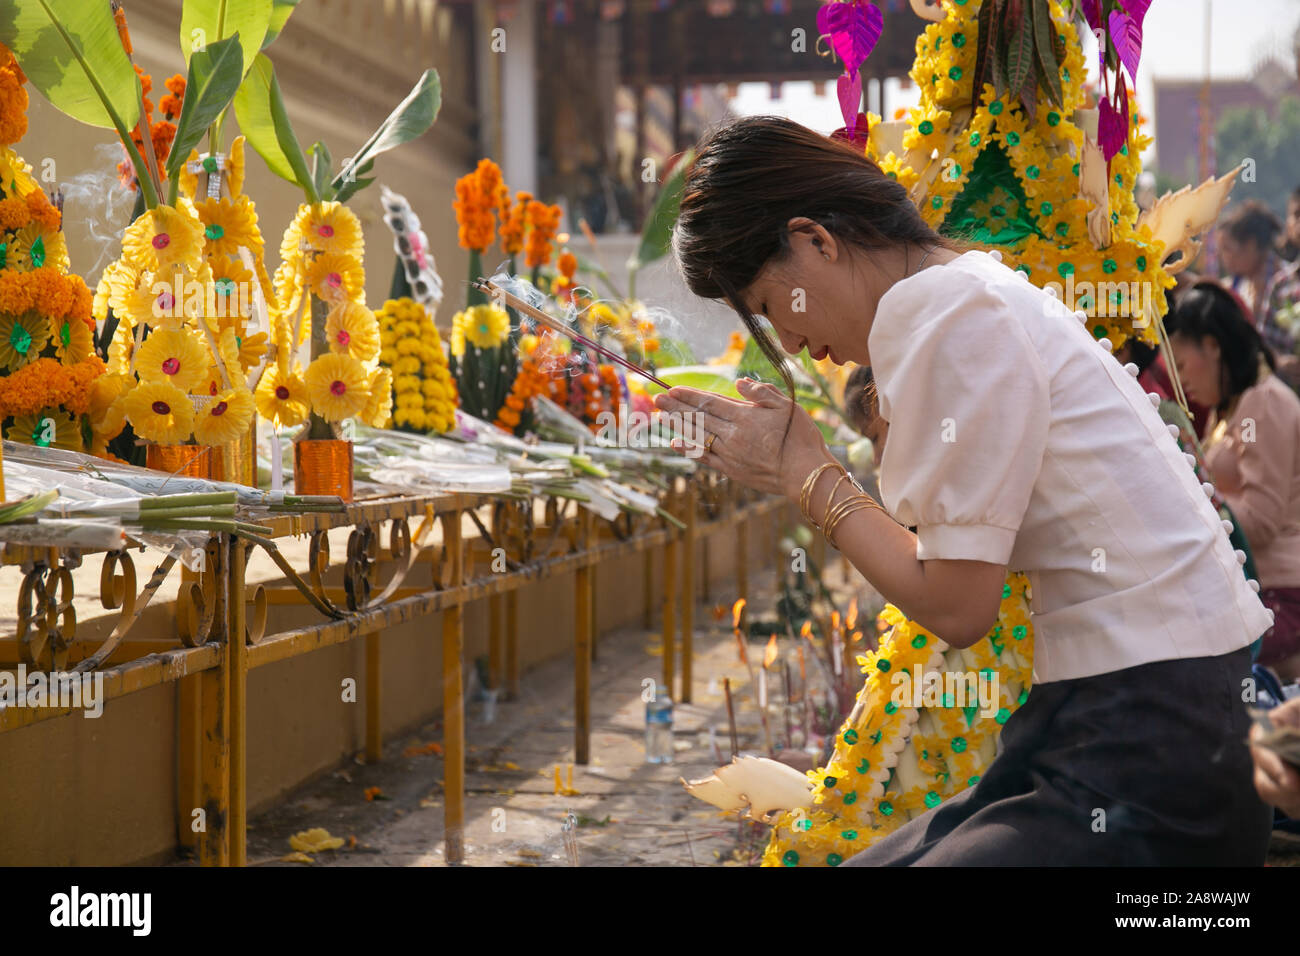 Vientiane, Laos. 11th Nov, 2019. People attend the almsgiving activity around the That Luang Stupa in Vientiane, capital of Laos, Nov. 11, 2019. Considered as the most important religious festival in Laos, the That Luang Festival, which falls from Nov. 5 to Nov. 11 this year, concluded on Monday with a mass almsgiving activity held in and around the That Luang Stupa in Vientiane. Credit: Kaikeo Saiyasane/Xinhua/Alamy Live News Stock Photo